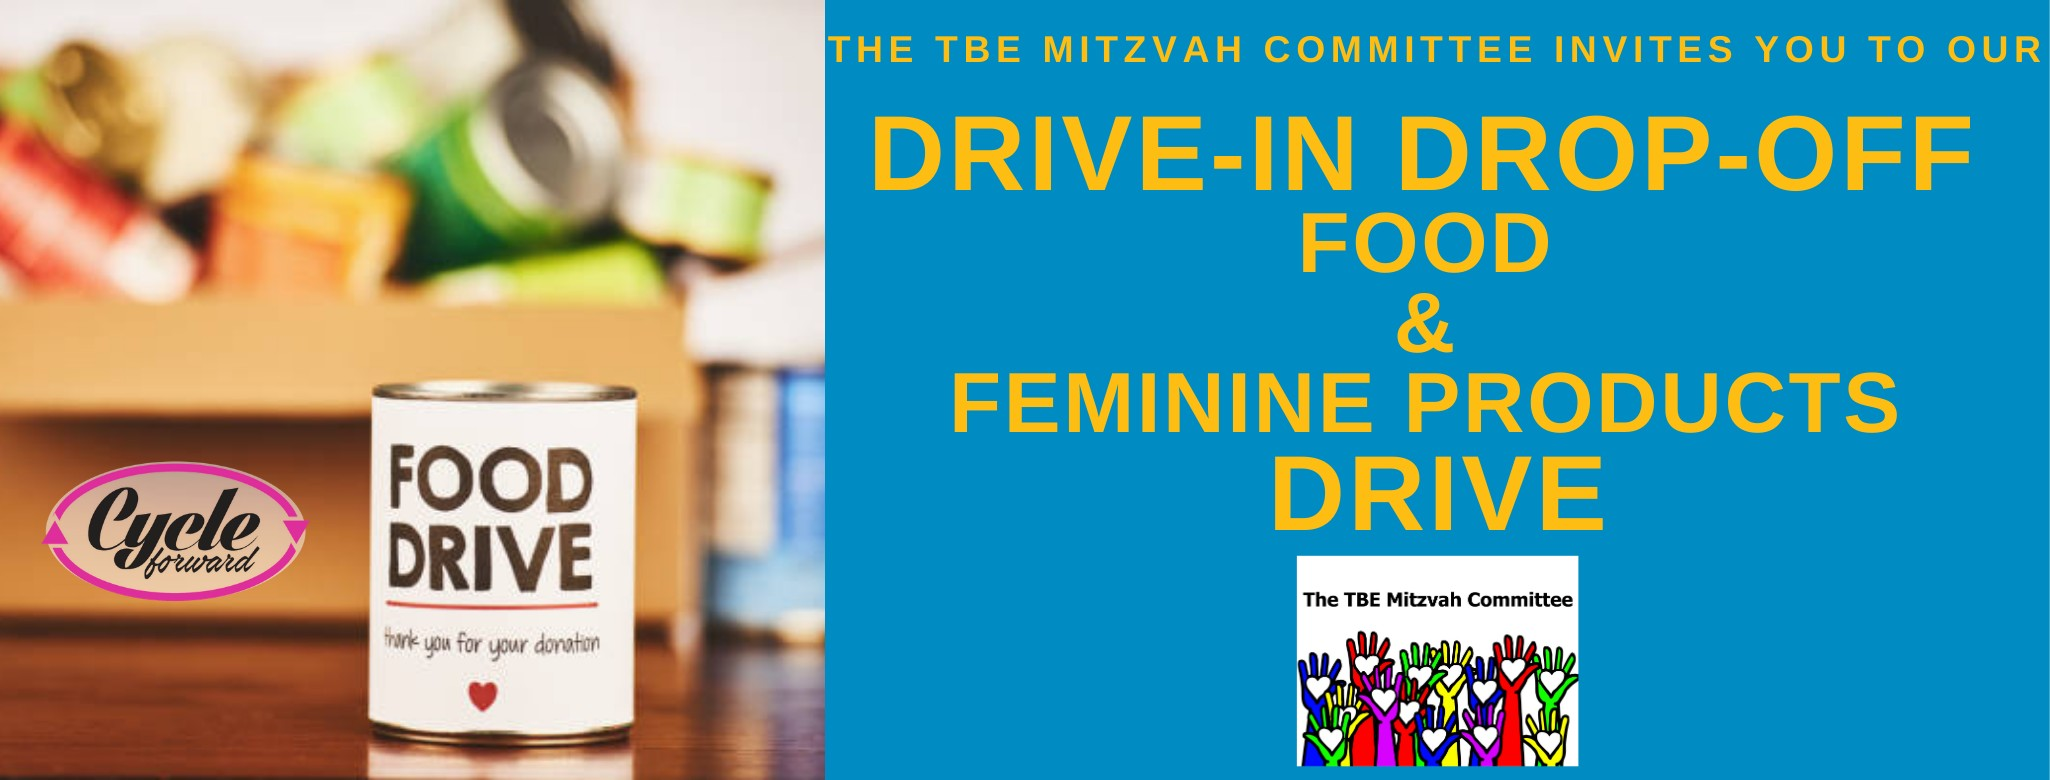 "<a href=""https://www.templebethel.com/mitzvah-committee.html""